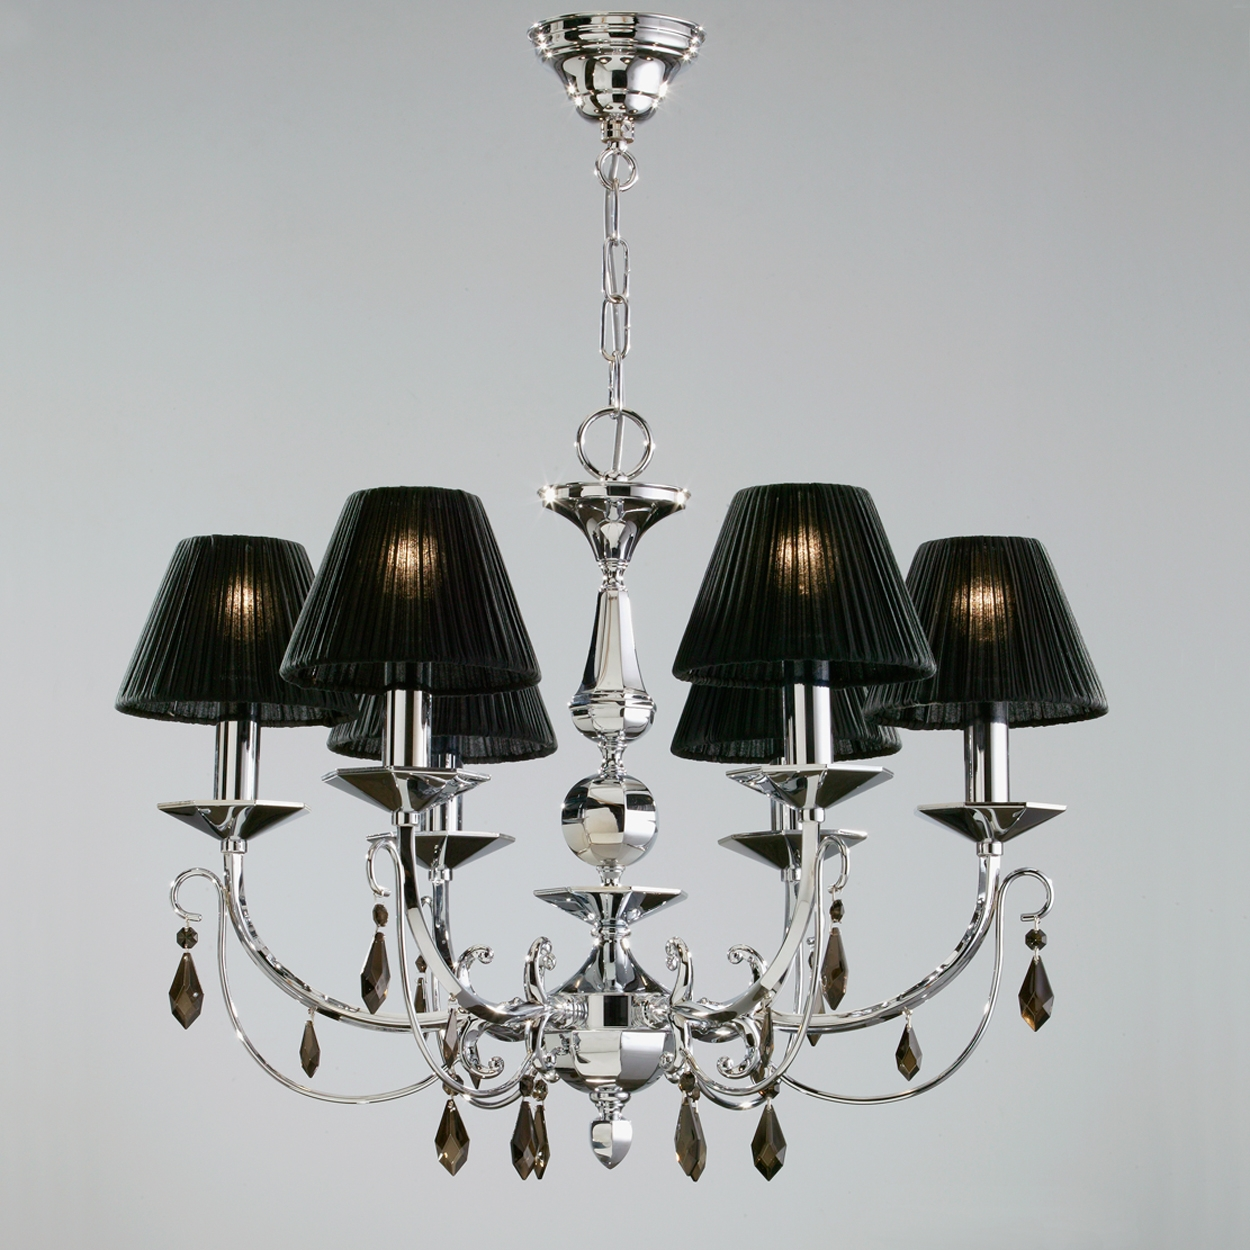 Featured Image of Chandeliers With Lamp Shades